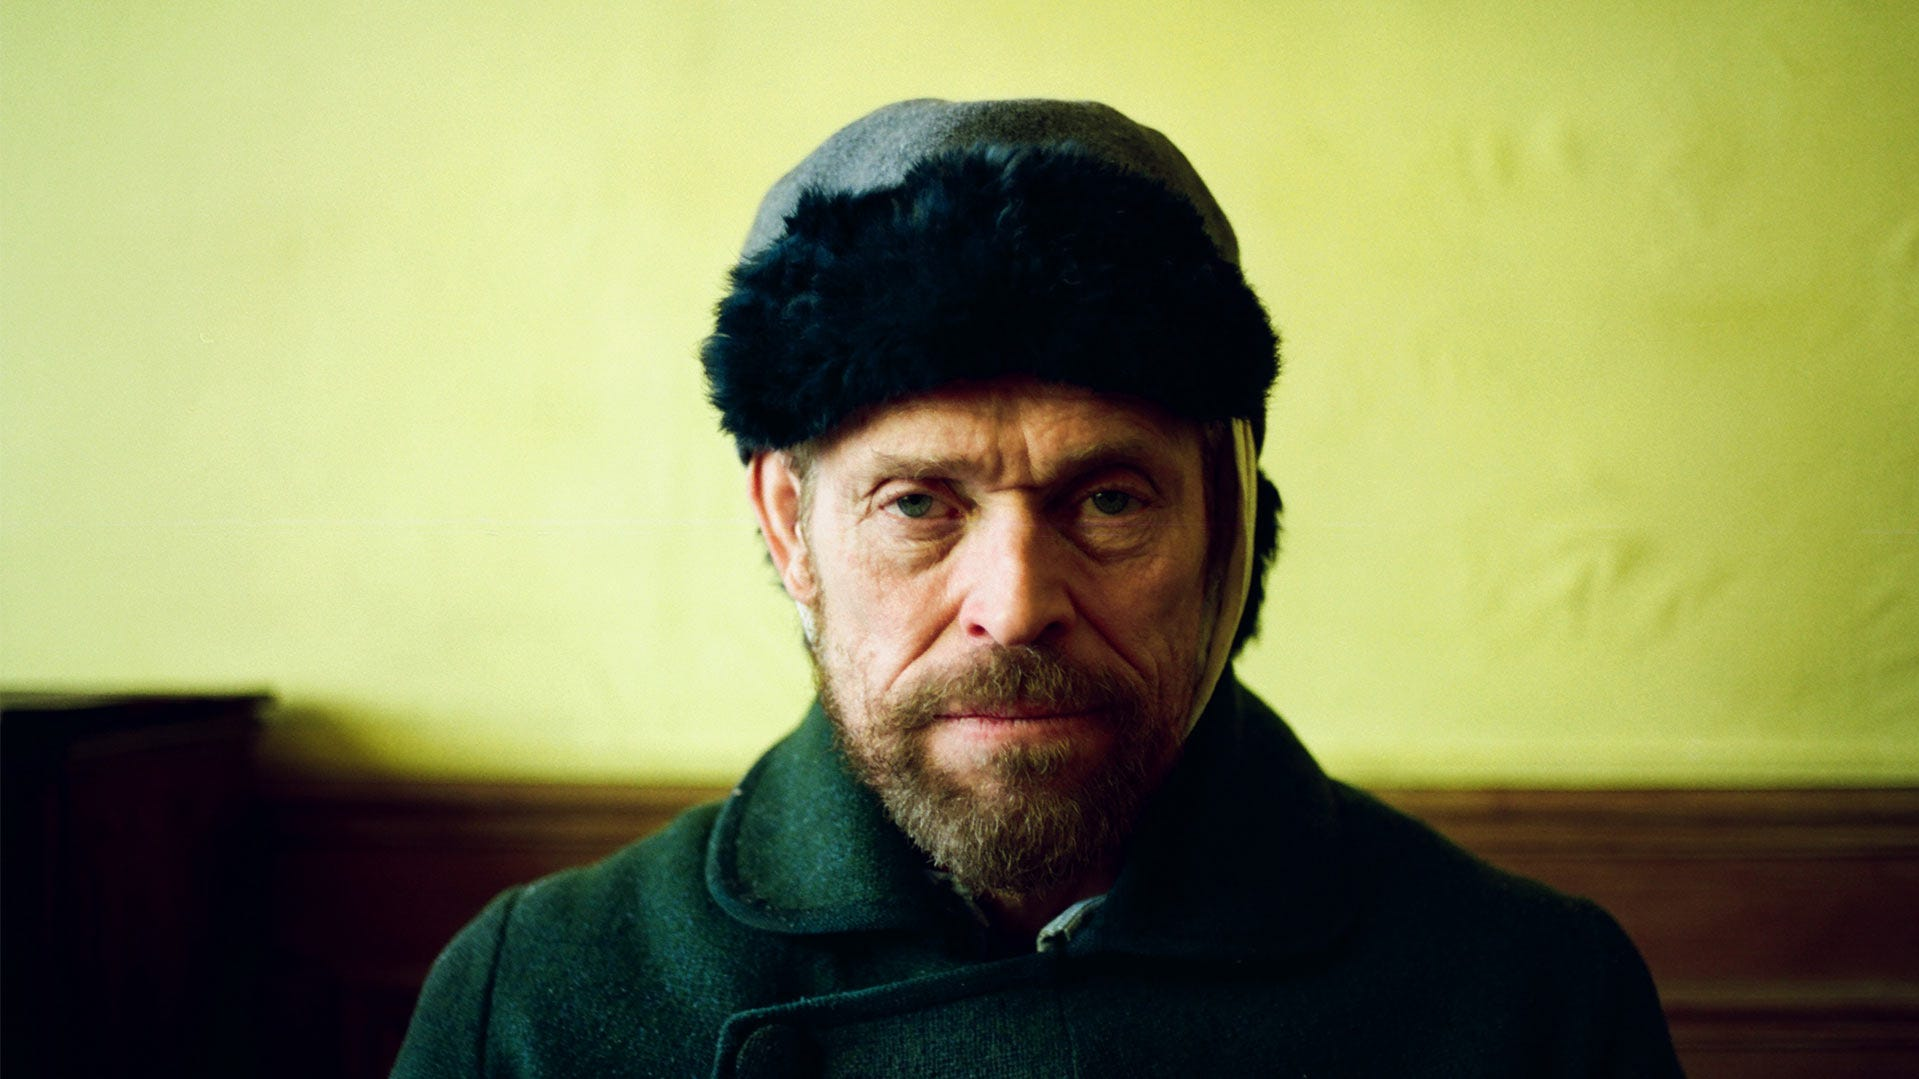 Willem Dafoe, 63, takes on Vincent van Gogh, 37, in drama 'At Eternity's Gate'